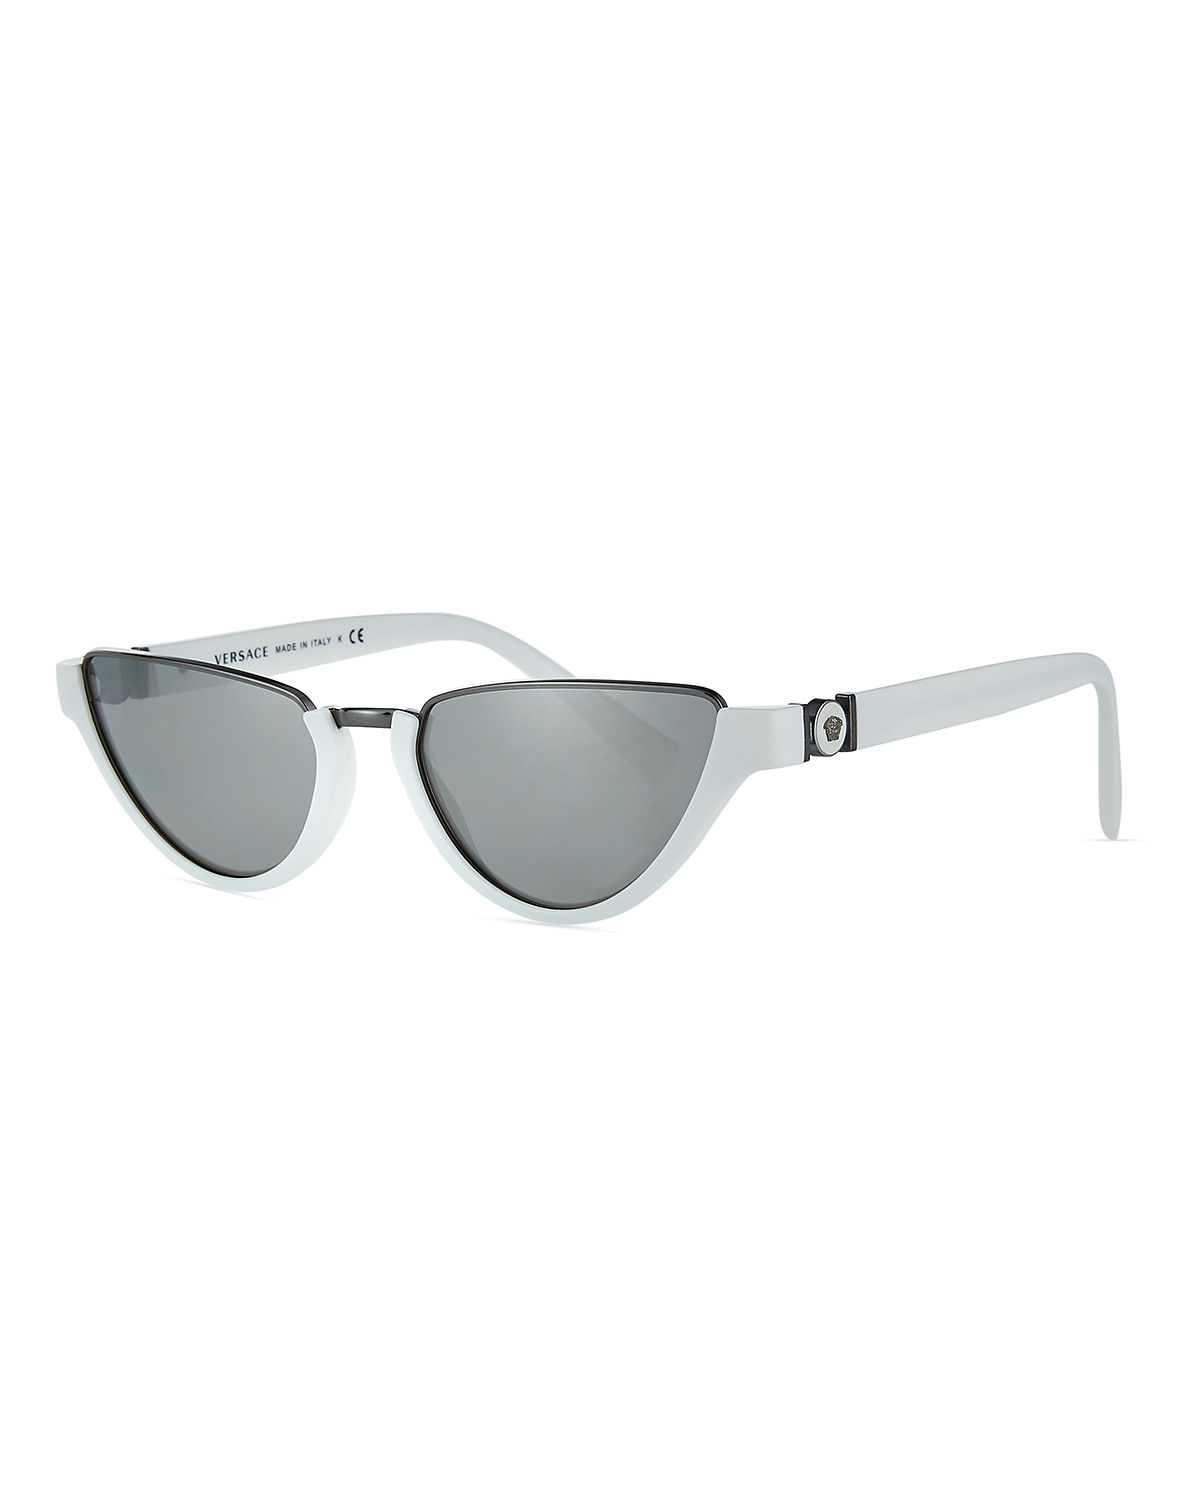 Versace Sunglasses MONOCHROMATIC MEDUSA HEAD RECTANGLE SUNGLASSES